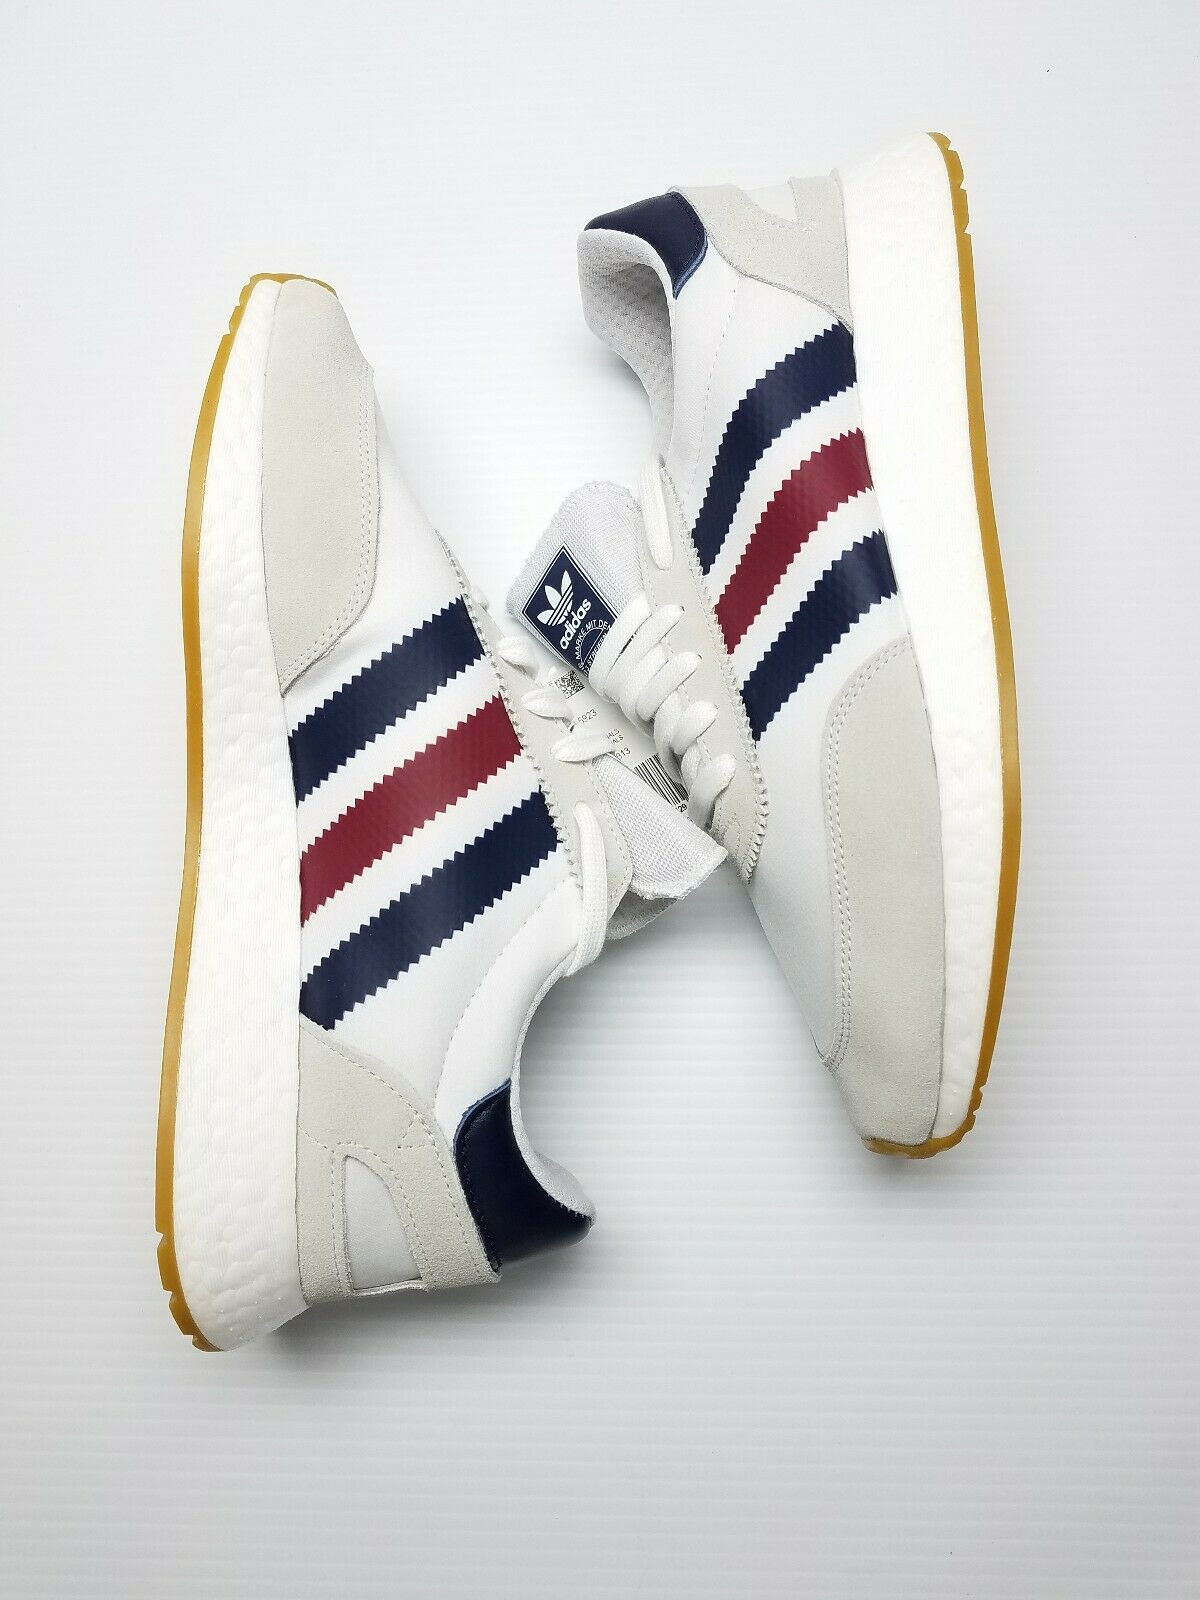 Adidas Iniki boost I-5923 BD7813 White Tri-color Men's Running shoes Sz 11.5